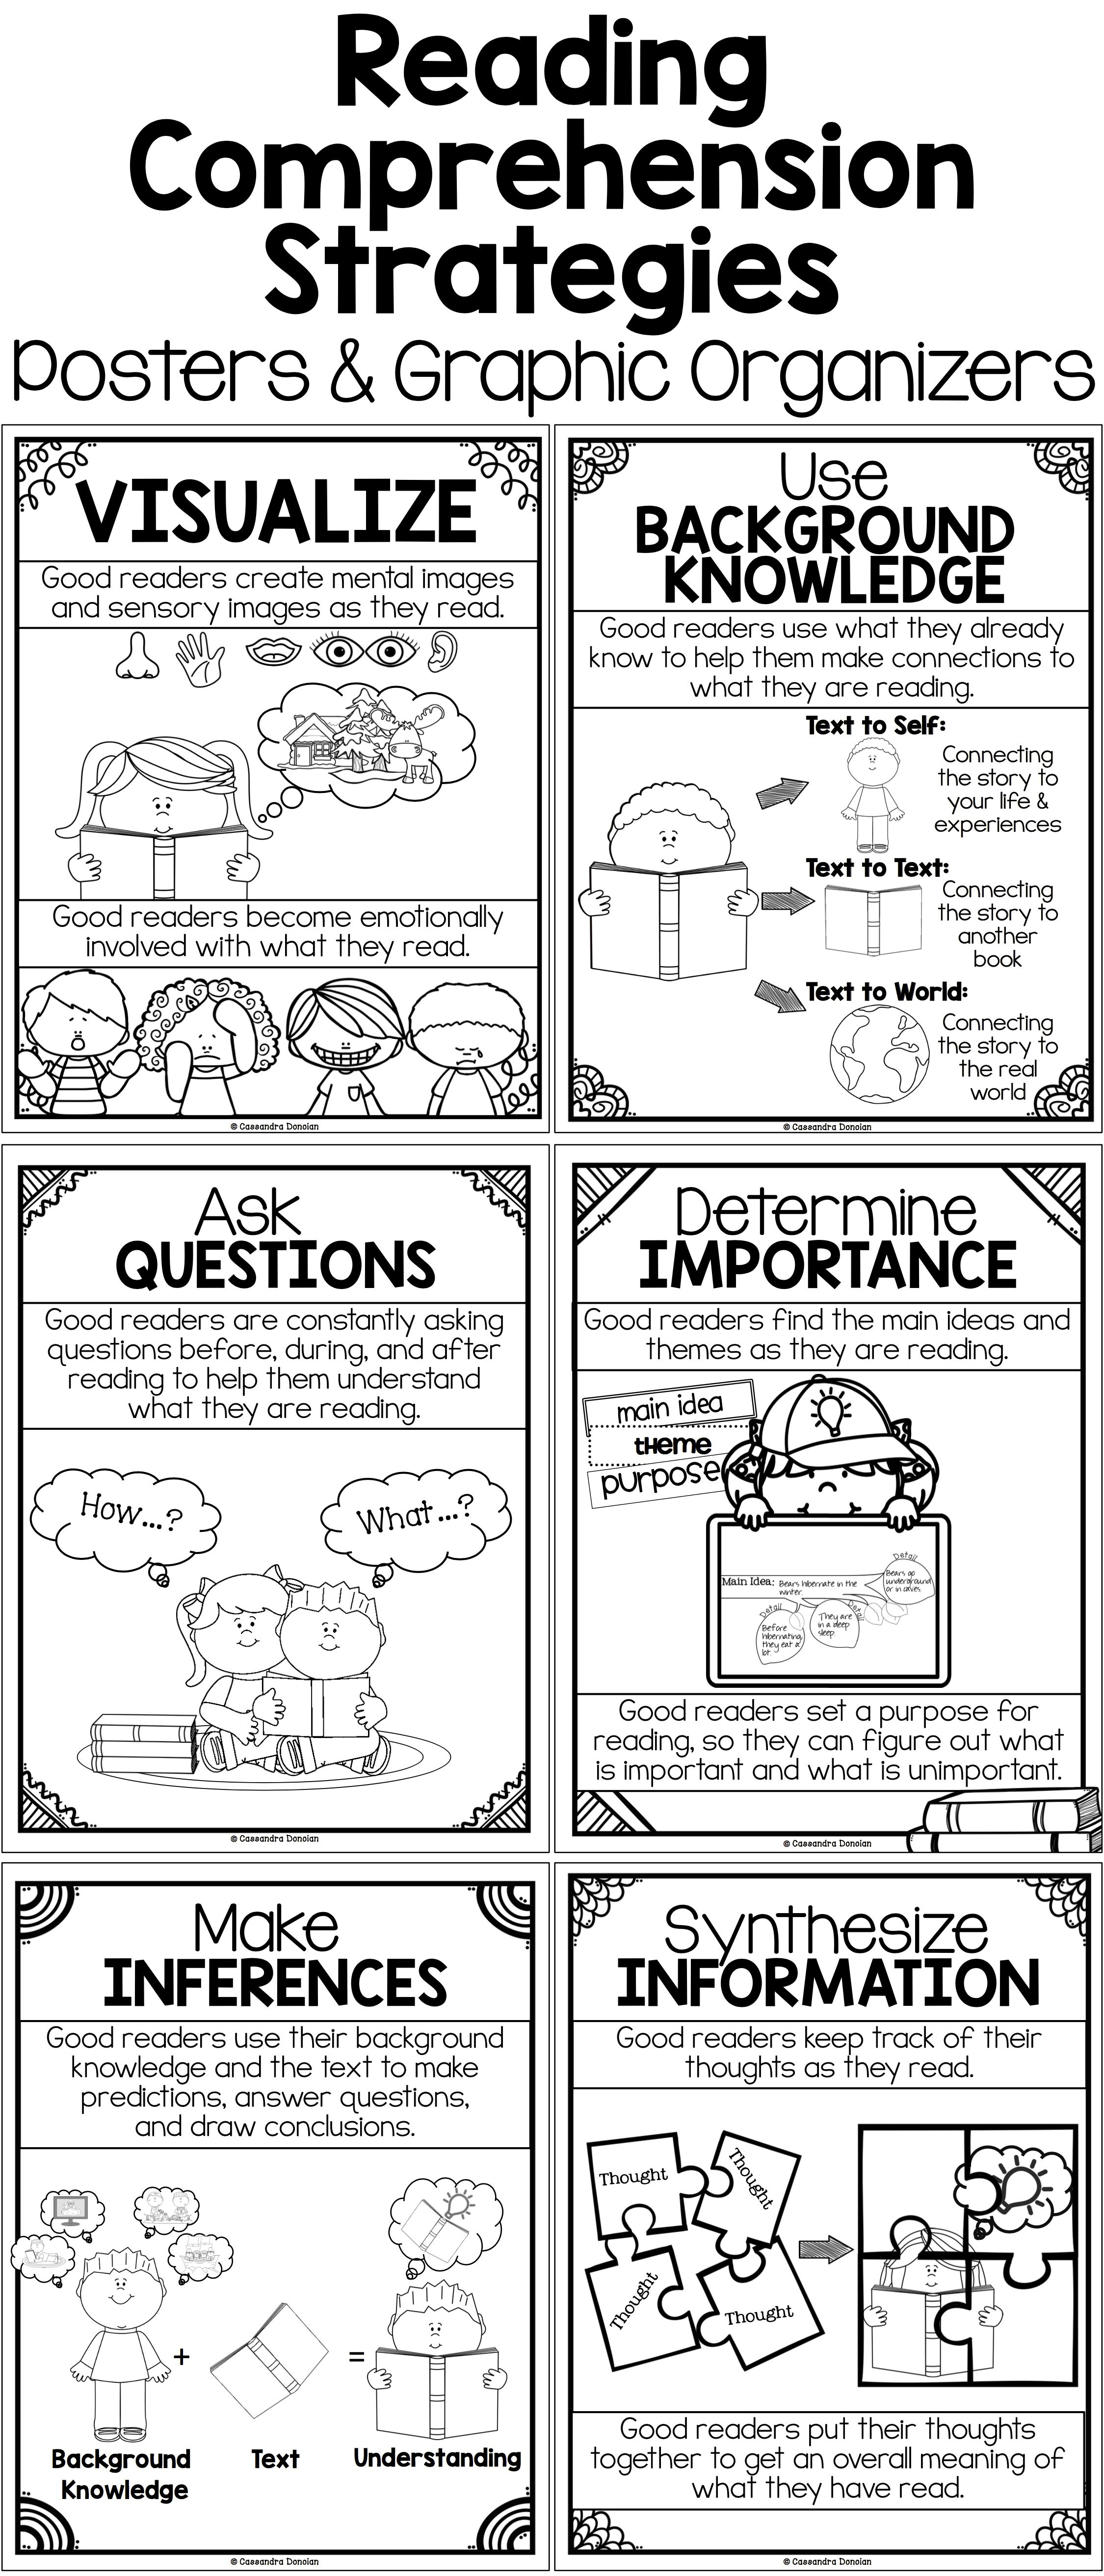 Research Based Reading Comprehension Strategies Posters B W Or Reading Comprehension Strategies Posters Reading Comprehension Comprehension Strategy Posters